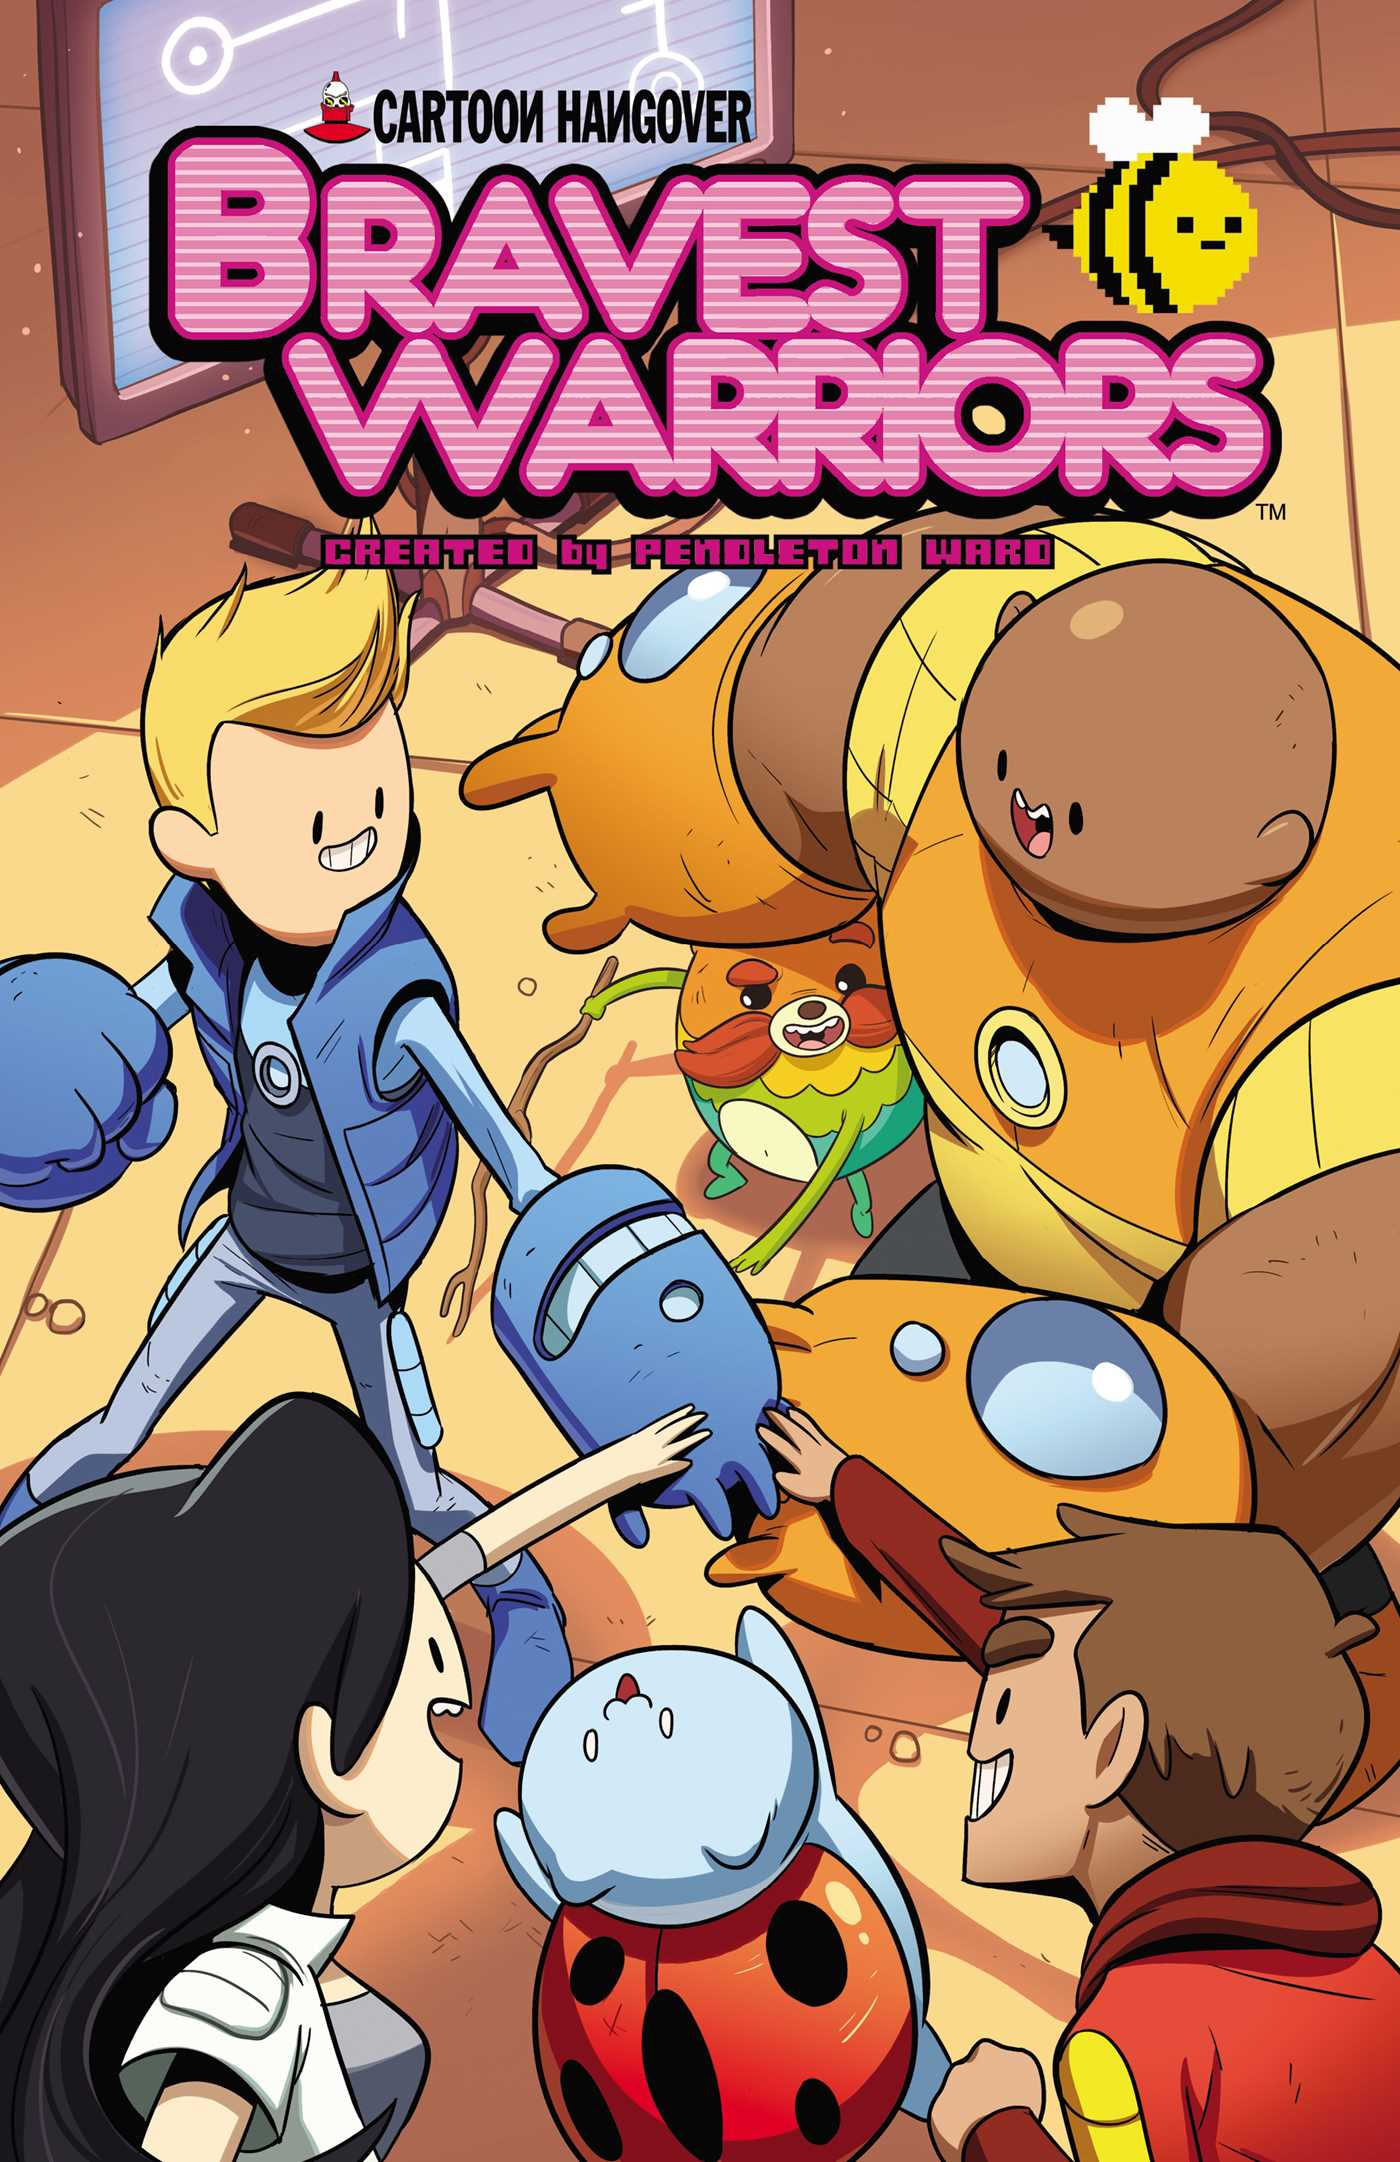 Bravest warriors vol 3 9781608863976 hr